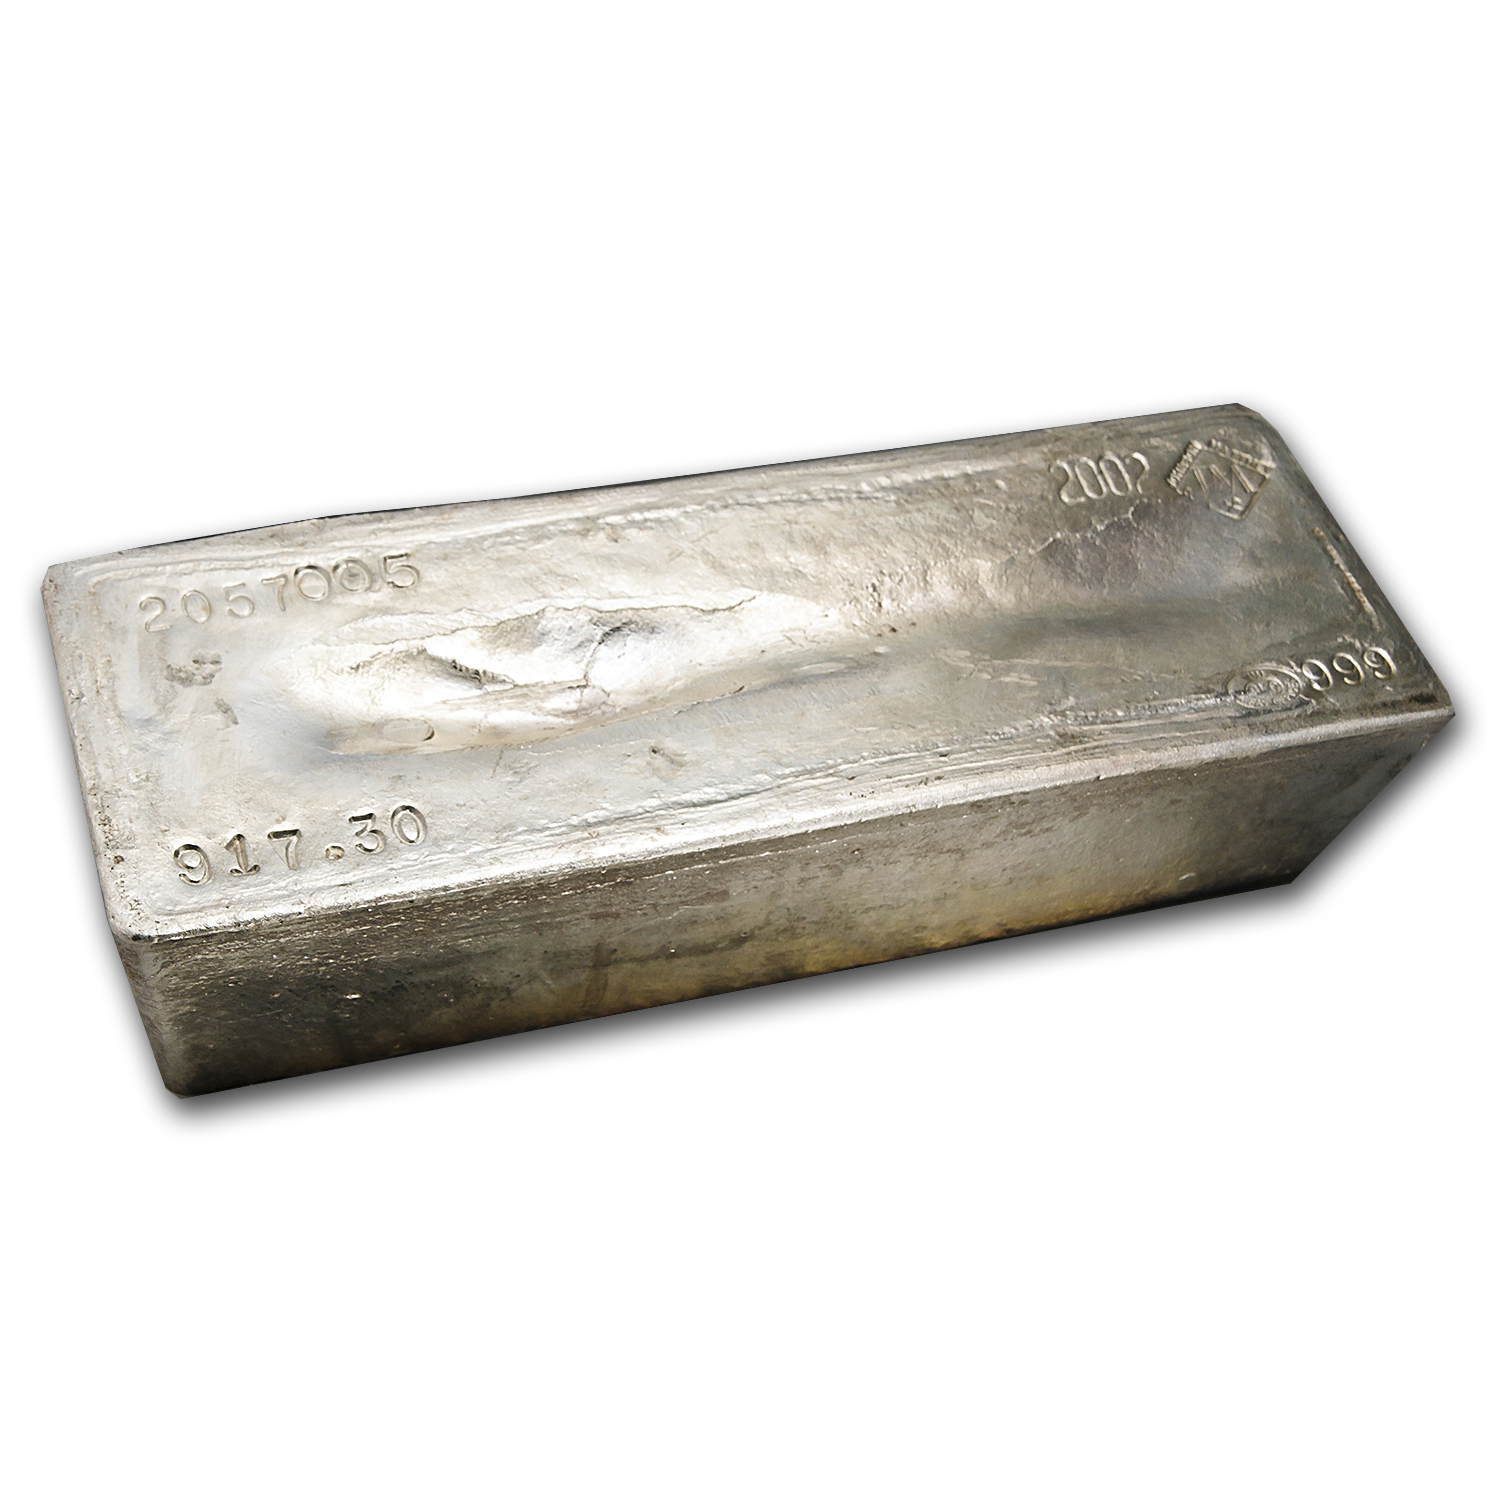 917.30 oz Silver Bars - Johnson Matthey